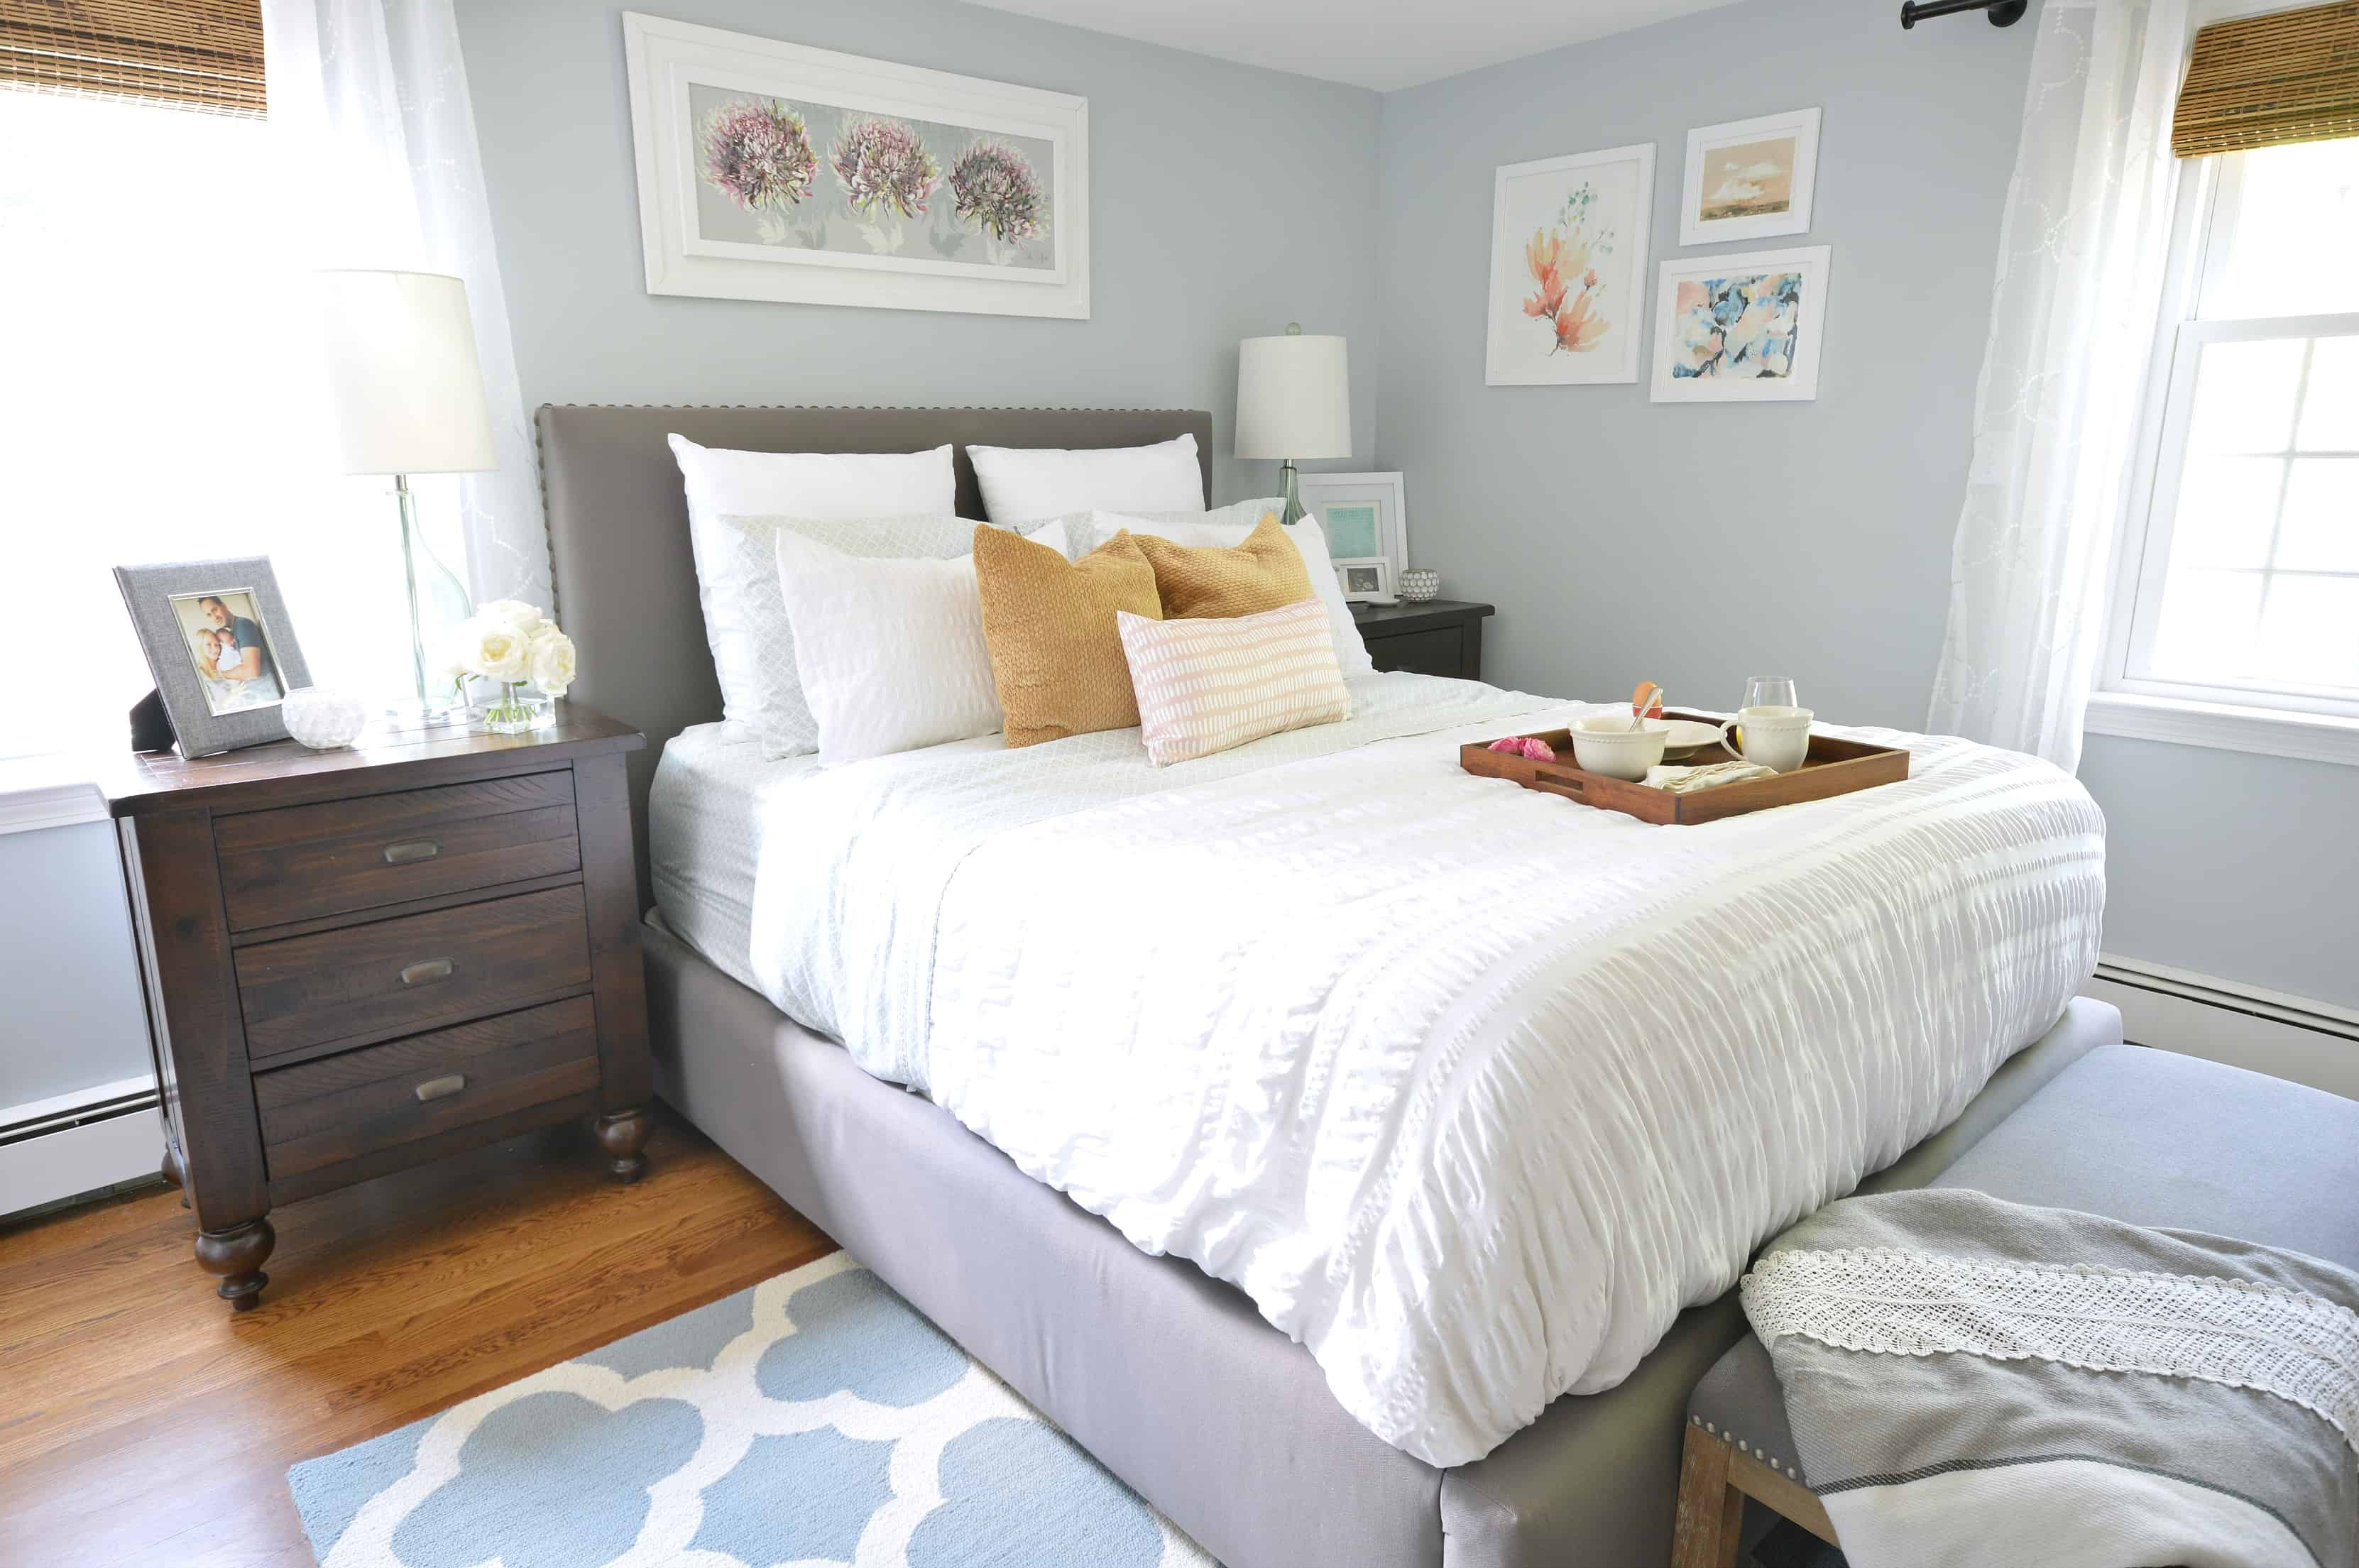 Grey bedroom - Take a tour of this stunning gray master bedroom. Featuring pops of color and lots of texture. You won't believe the before pictures! Full source list included so that you can recreate the look.